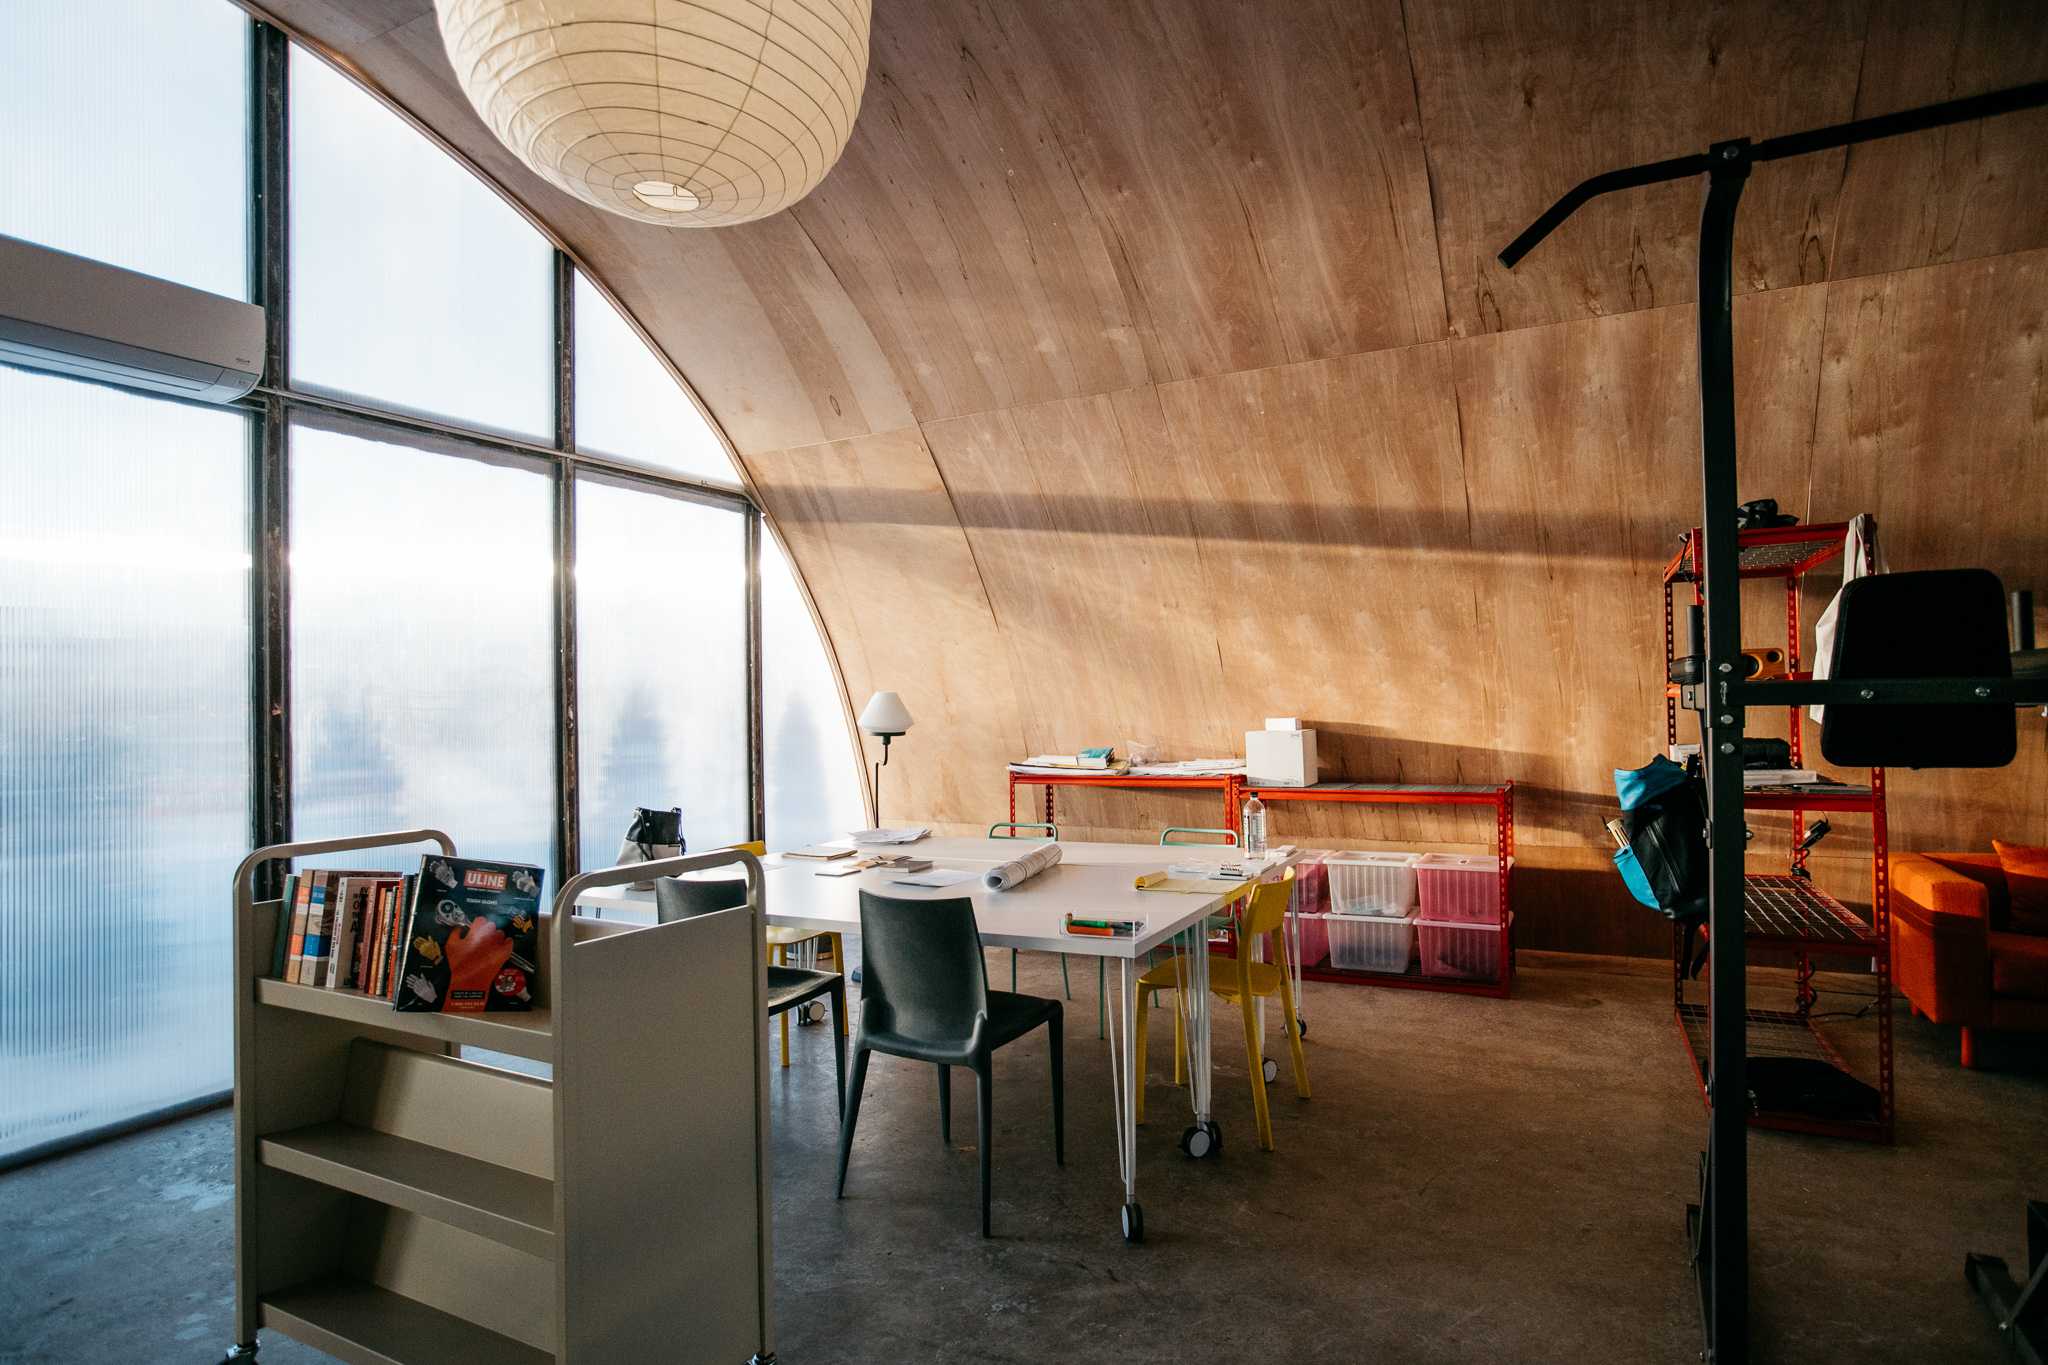 True north a community of quonset huts rises off of - Interior design jobs in michigan ...